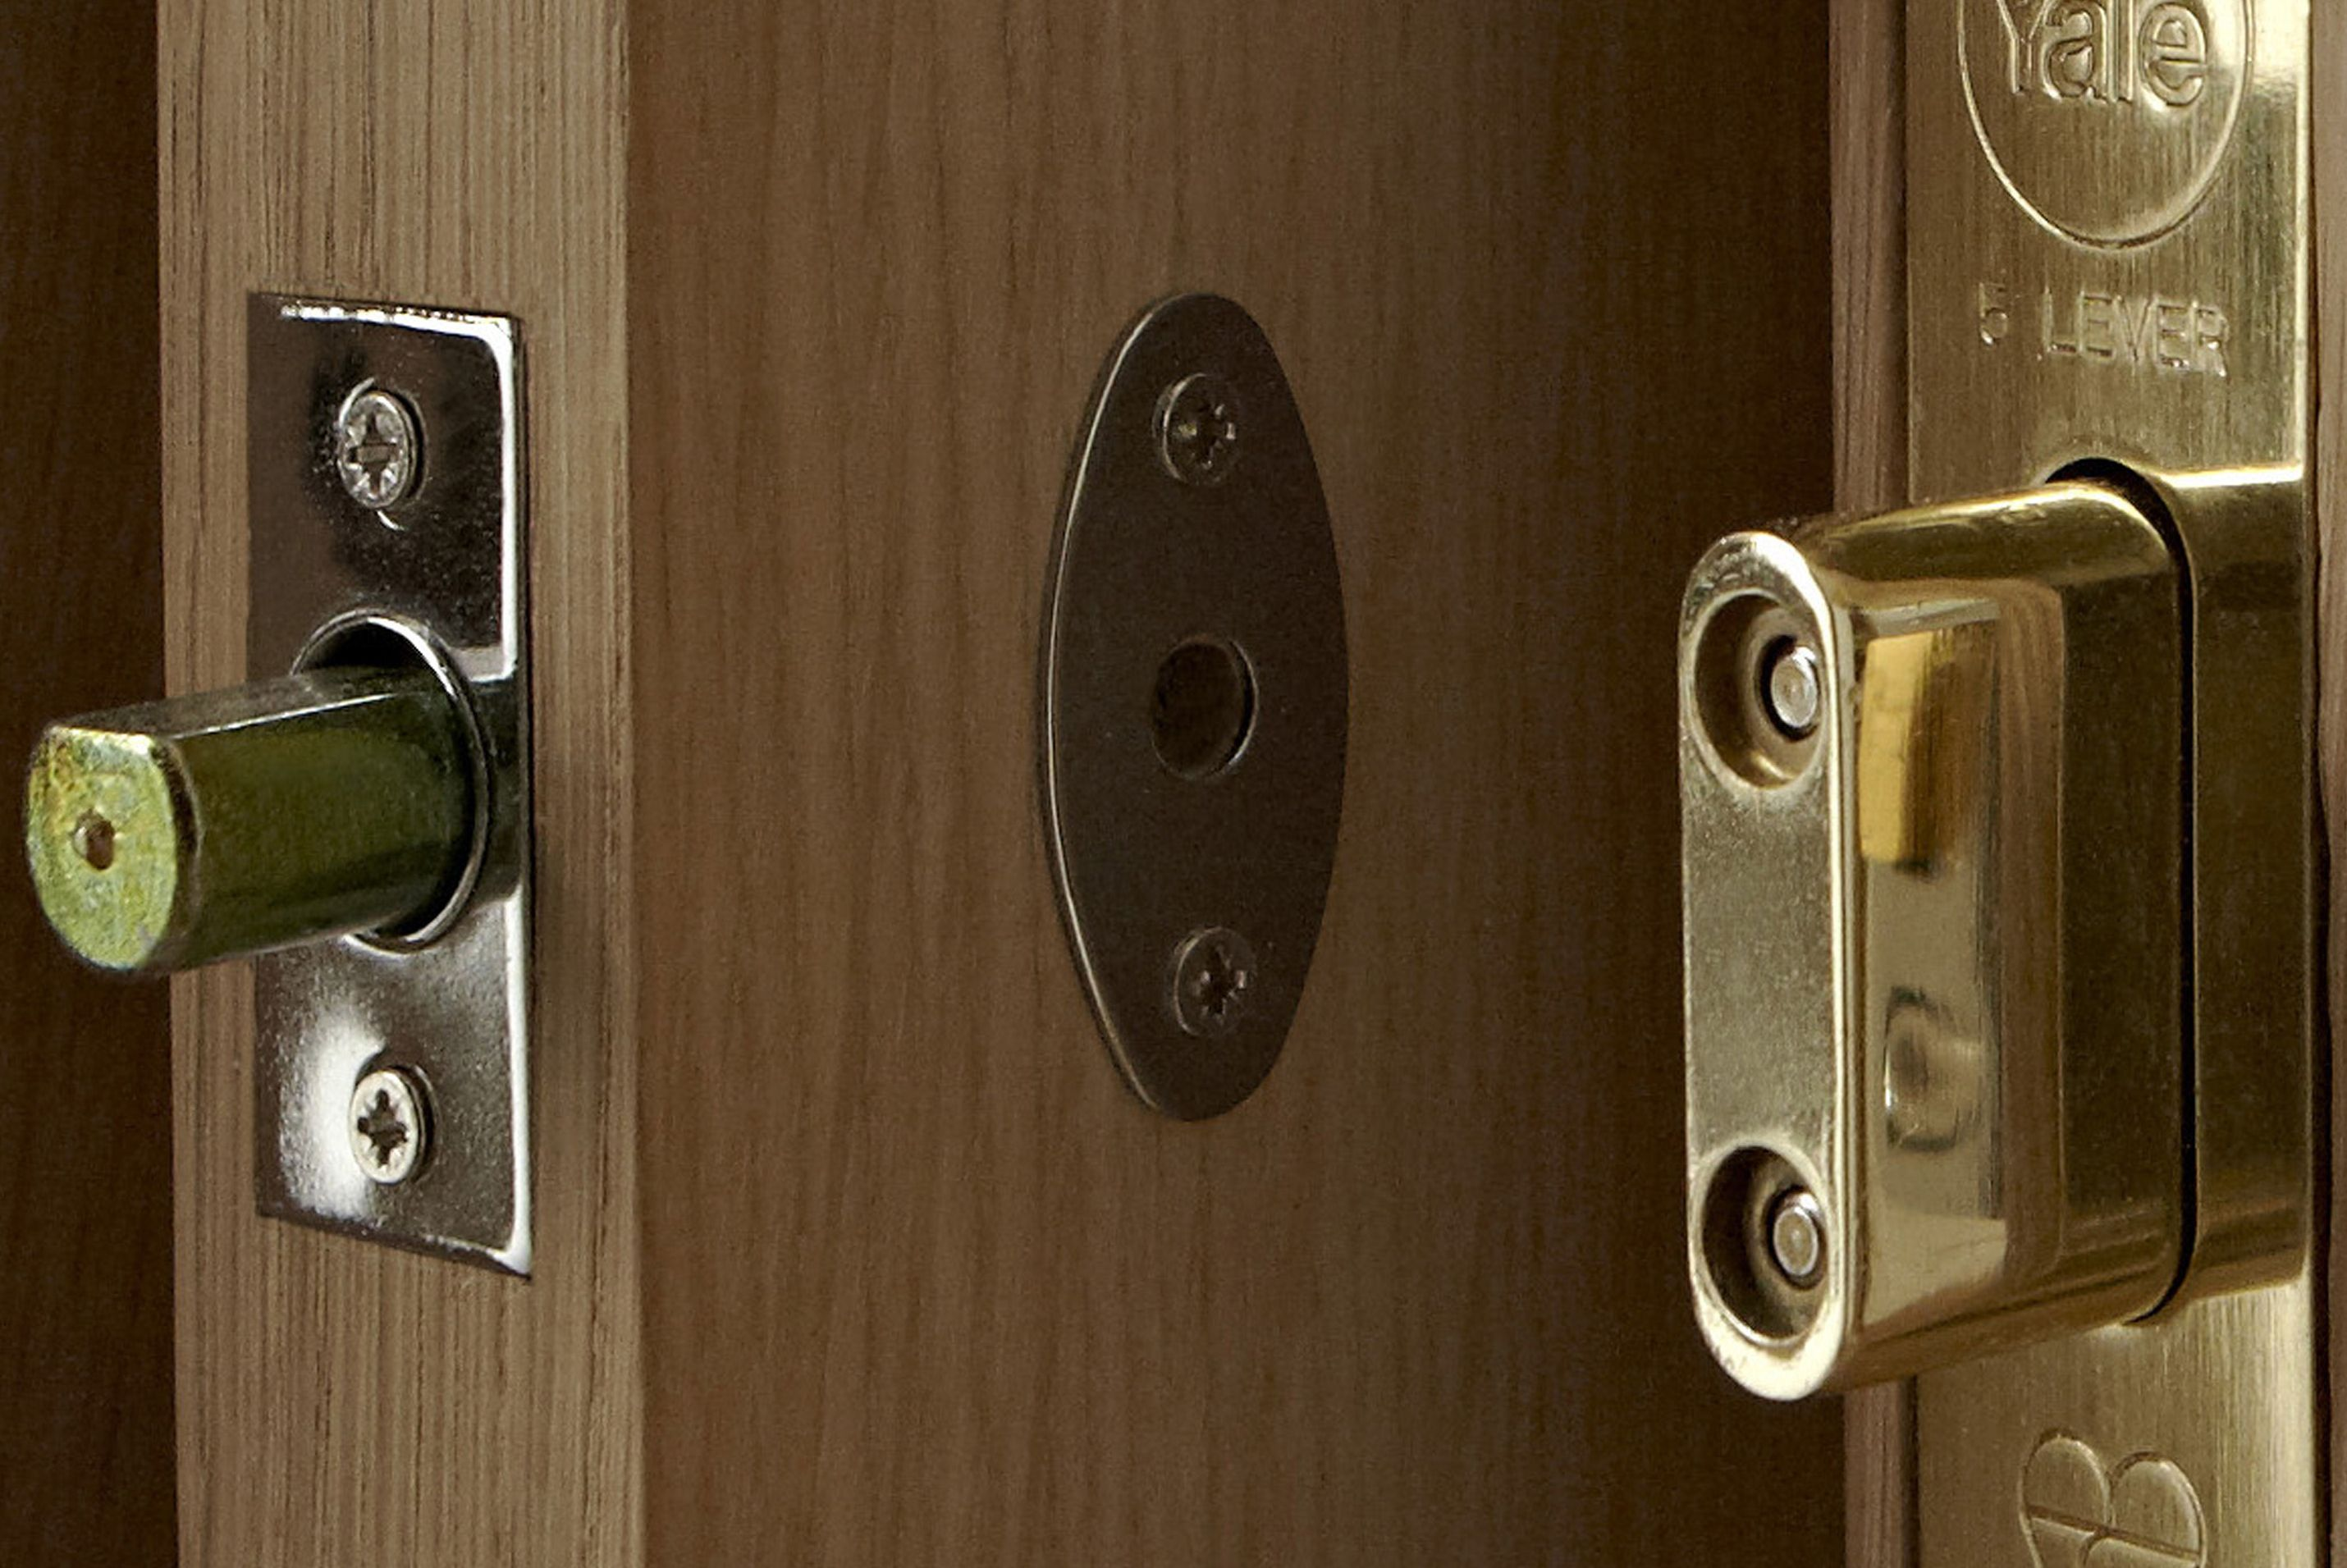 Door window locks buying guide ideas advice diy at b q - Installing a lock on a bedroom door ...